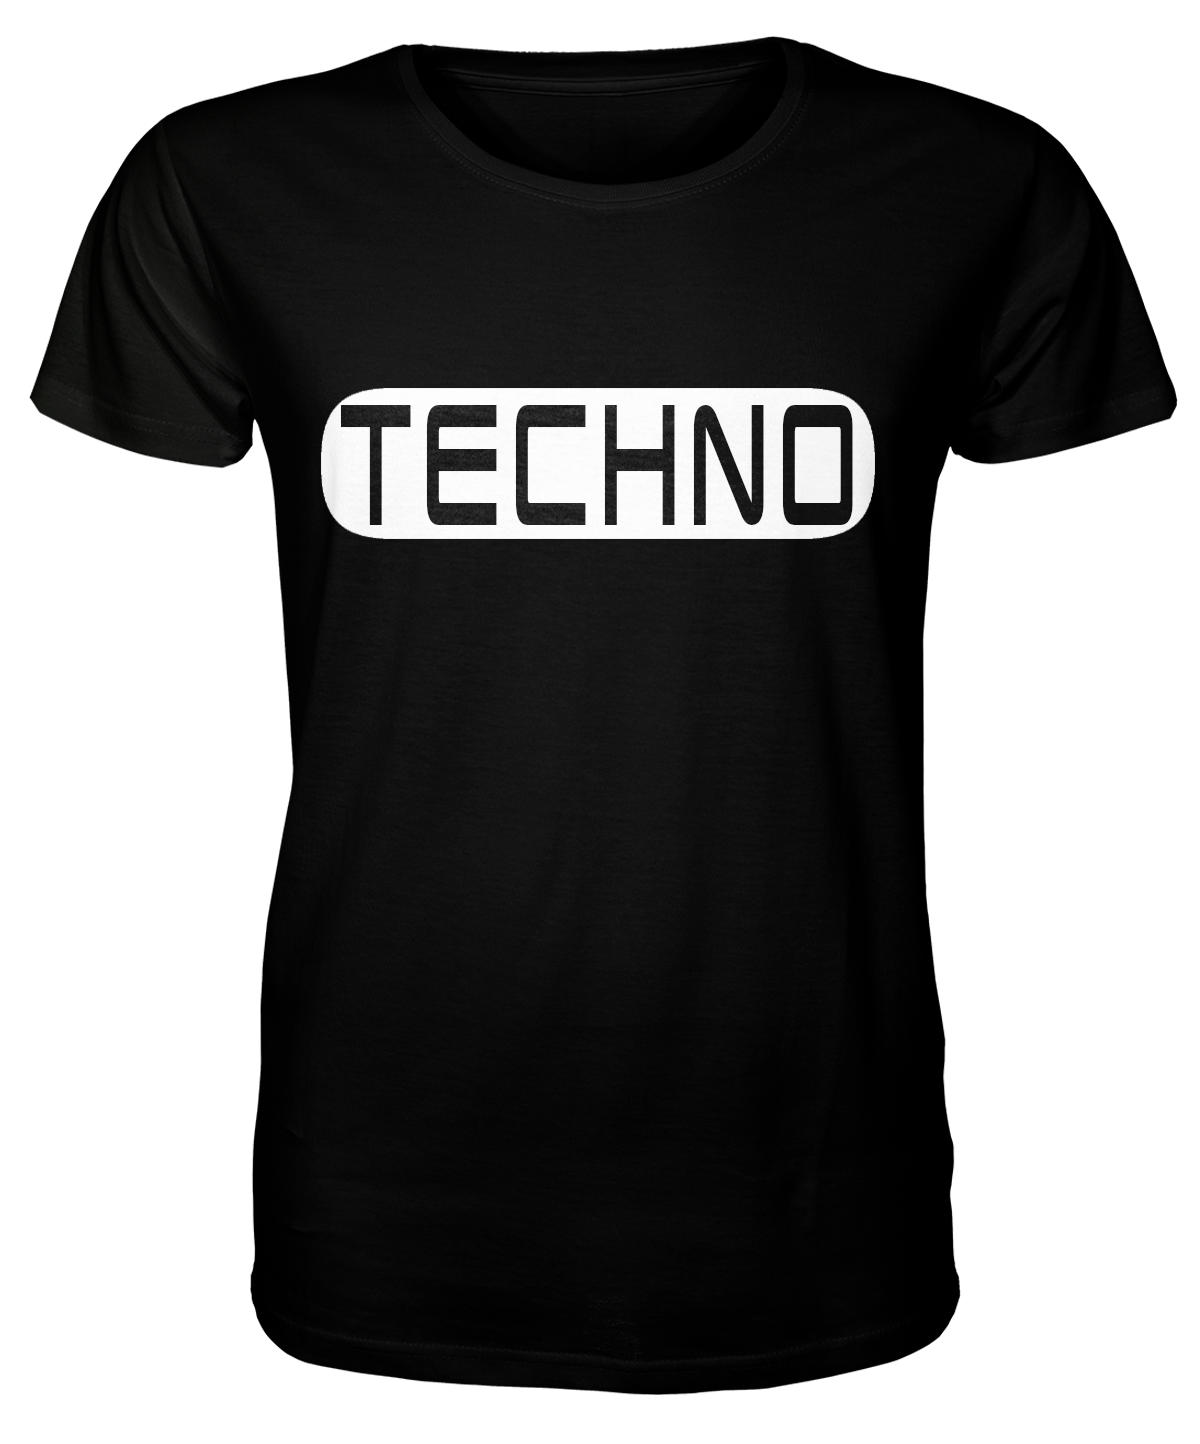 2018 Summer T Shirt Techno Shirt. Roland Font, Dance Music, Hiphop, Techno, EDM, Electronic O Neck Shirt Plus Size T-shirt